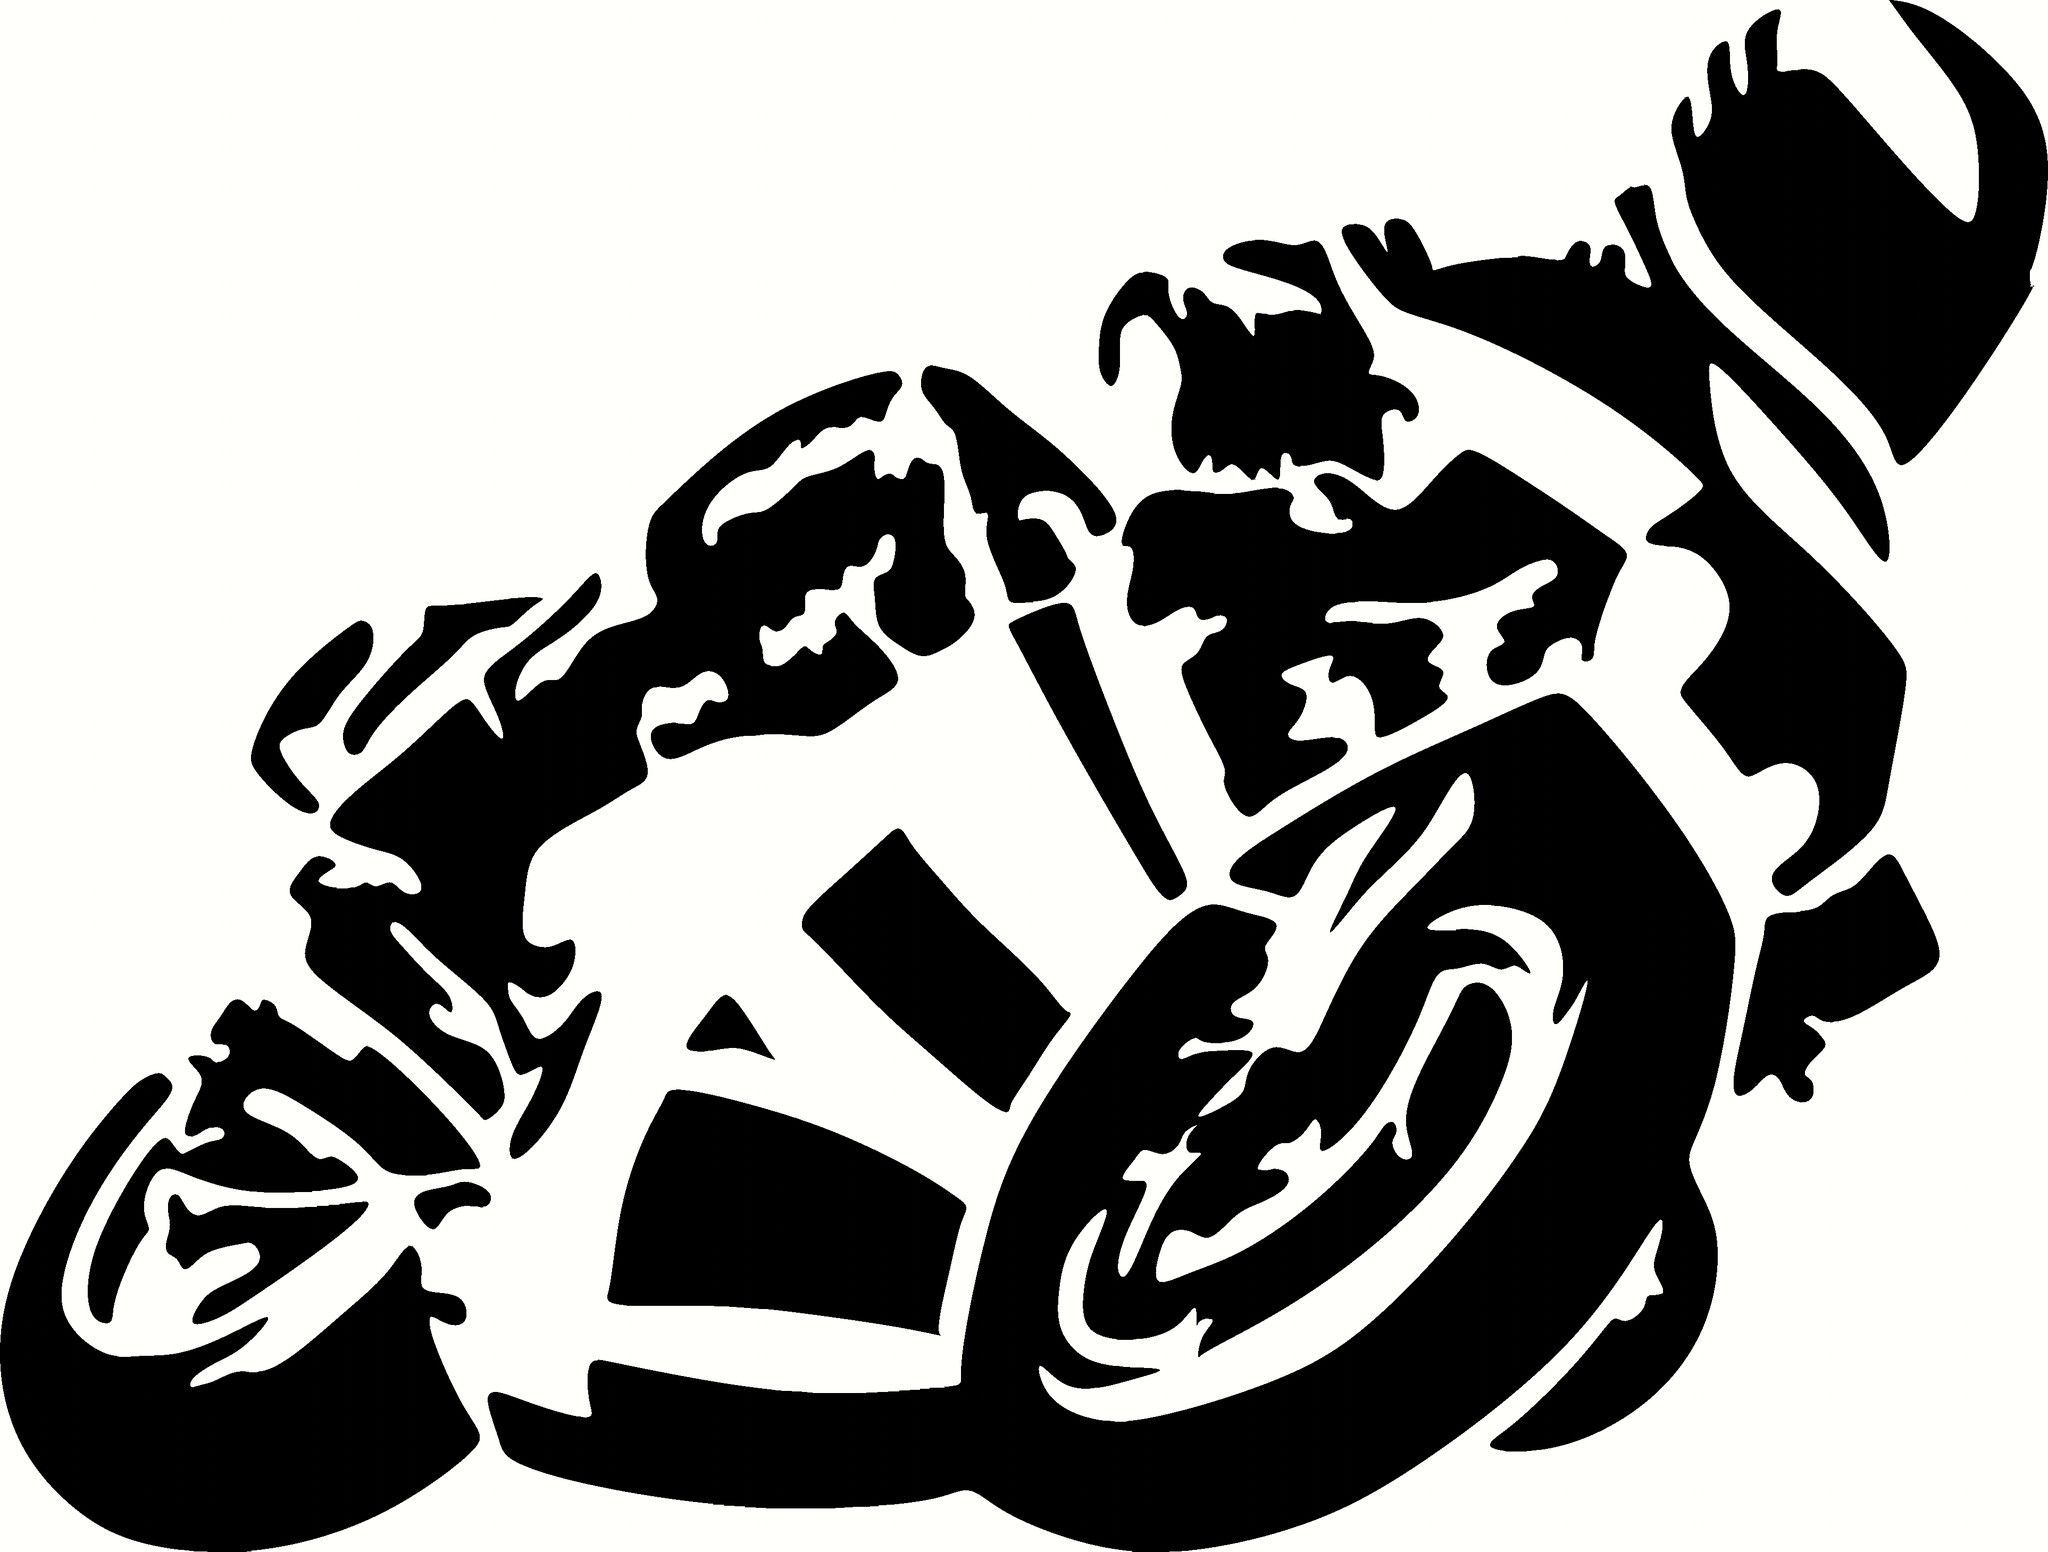 Motorcycle Racer Vinyl Cut Out Decal, Sticker - Choose your Color ...